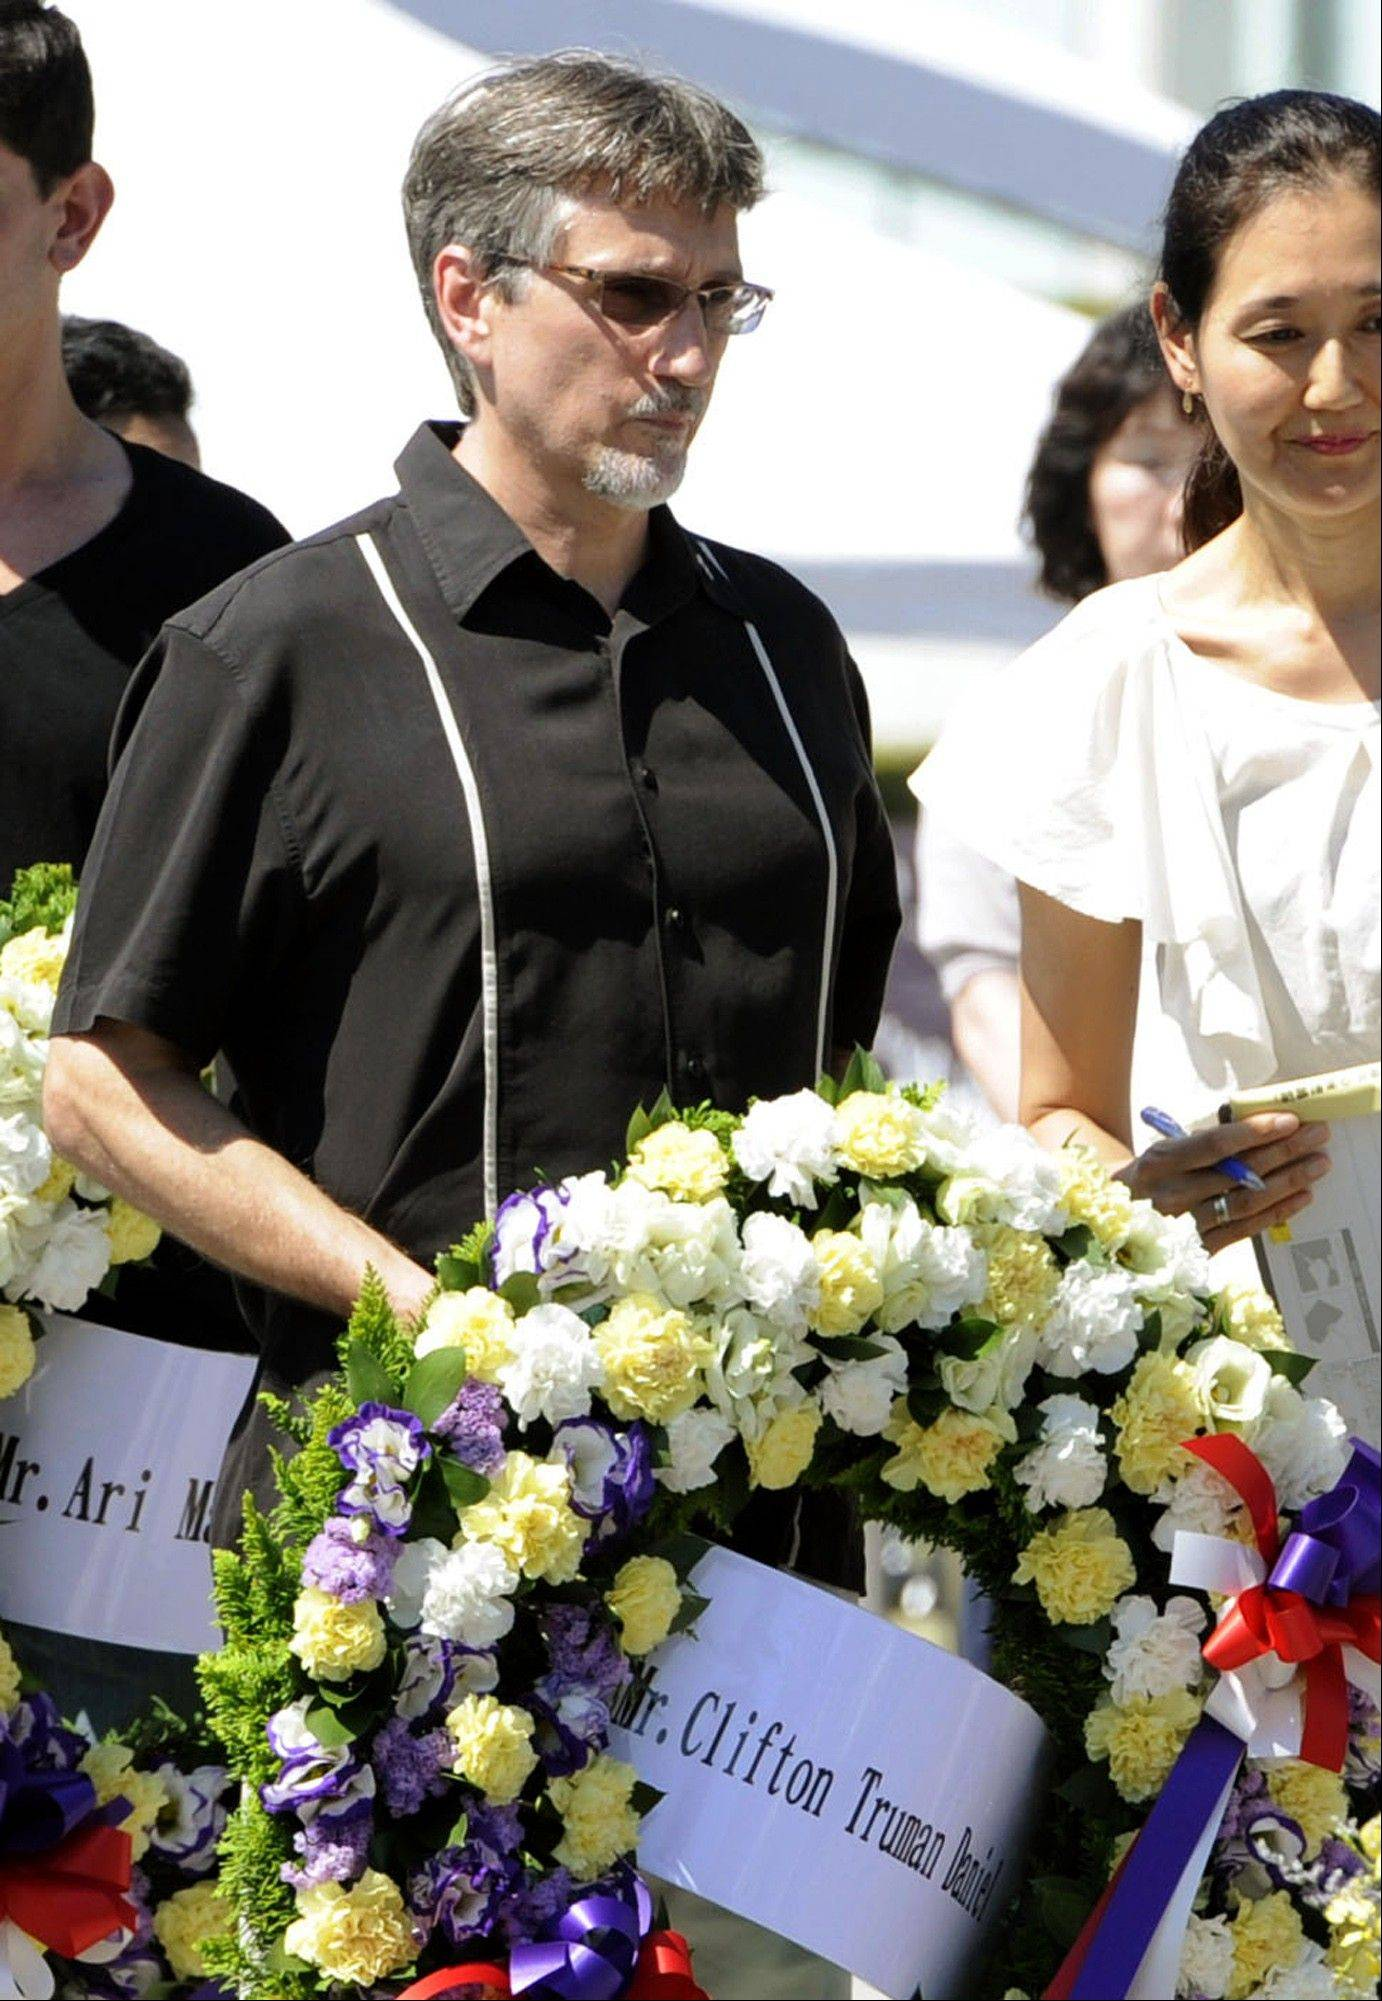 Clifton Truman Daniel, a grandson of former U.S. President Harry Truman, prepares for a wreath-laying at the Hiroshima Peace Memorial Park in Hiroshima, Japan, Saturday, Aug. 4, 2012. Daniel, whose first visit to Japan was sponsored by a Japanese peace group, paid respect Saturday to the 140,000 people killed by the Aug. 6, 1945 bombing authorized by his grandfather.